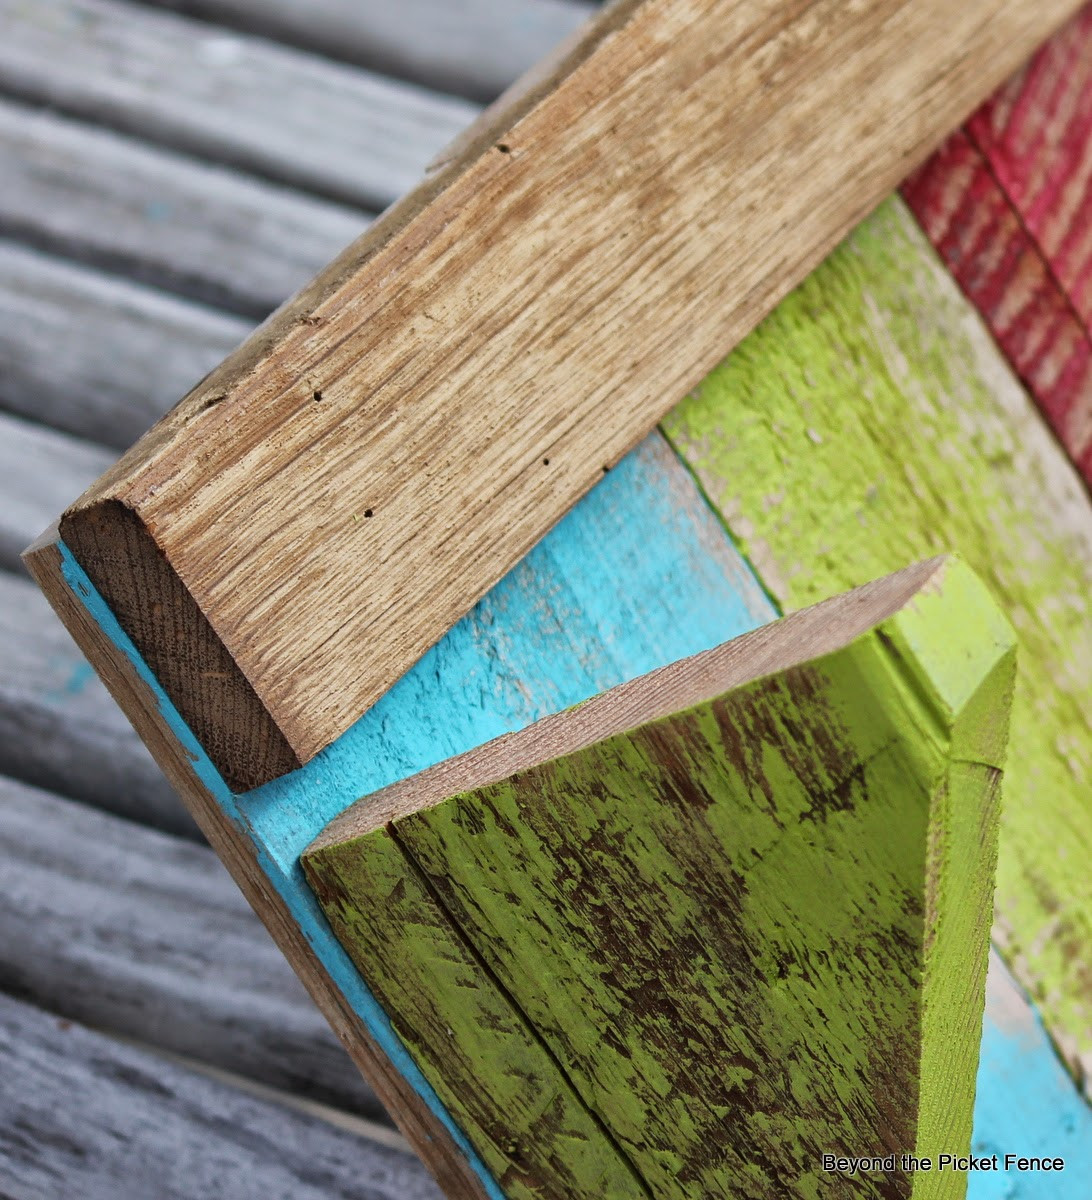 junckers hardwood flooring prices of beyond the picket fence junkers unite with a reclaimed wood shelf with regard to junkers united reclaimed wood shelf http bec4 beyondthepicketfence blogspot com